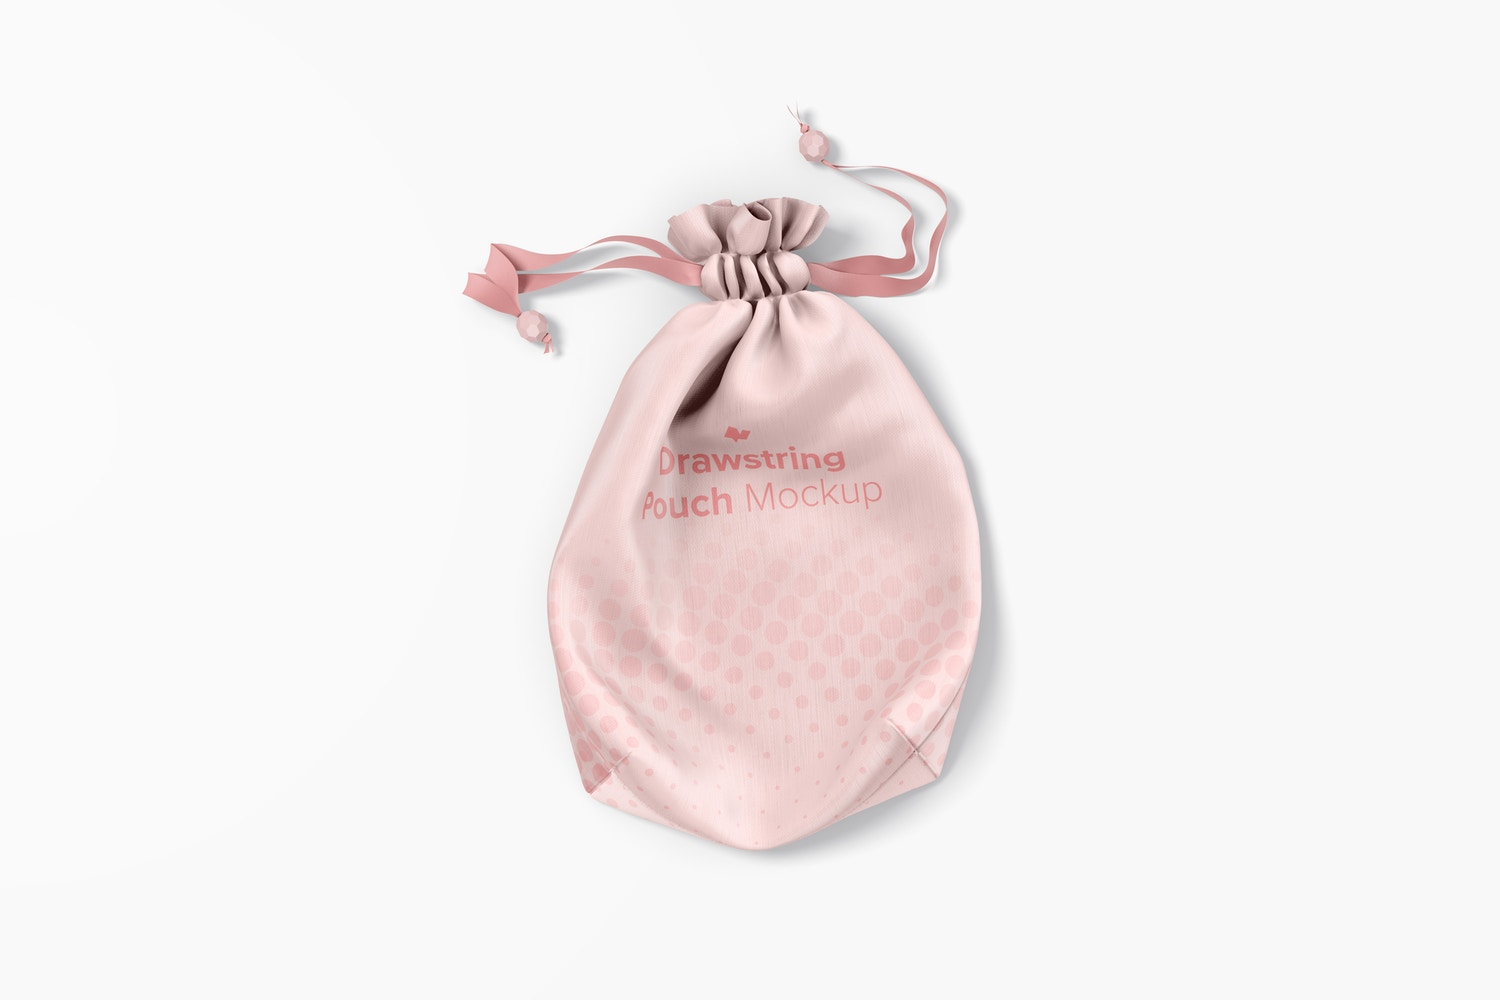 Drawstring Pouch Mockup, Top View